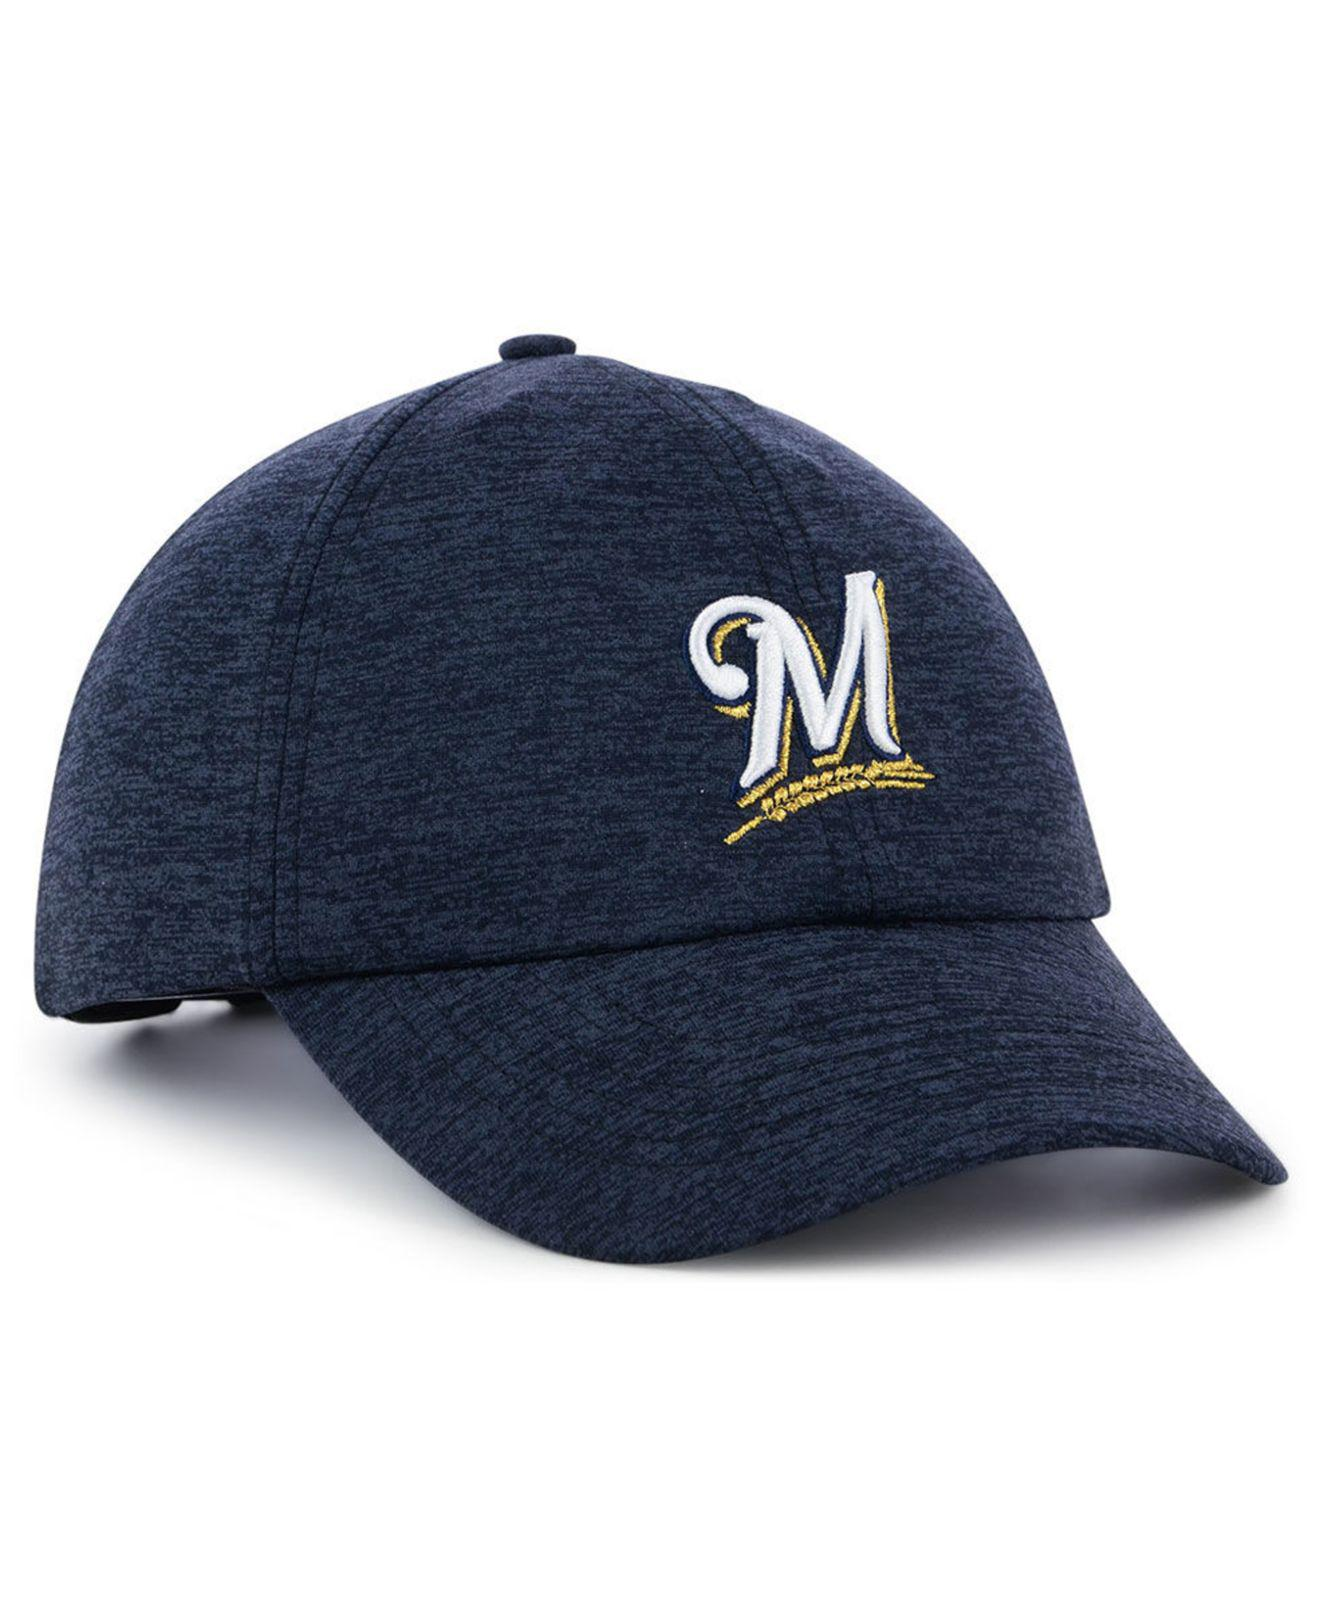 finest selection c9253 3e40b shop under armour blue milwaukee brewers renegade twist cap lyst. view  fullscreen 56681 64d38